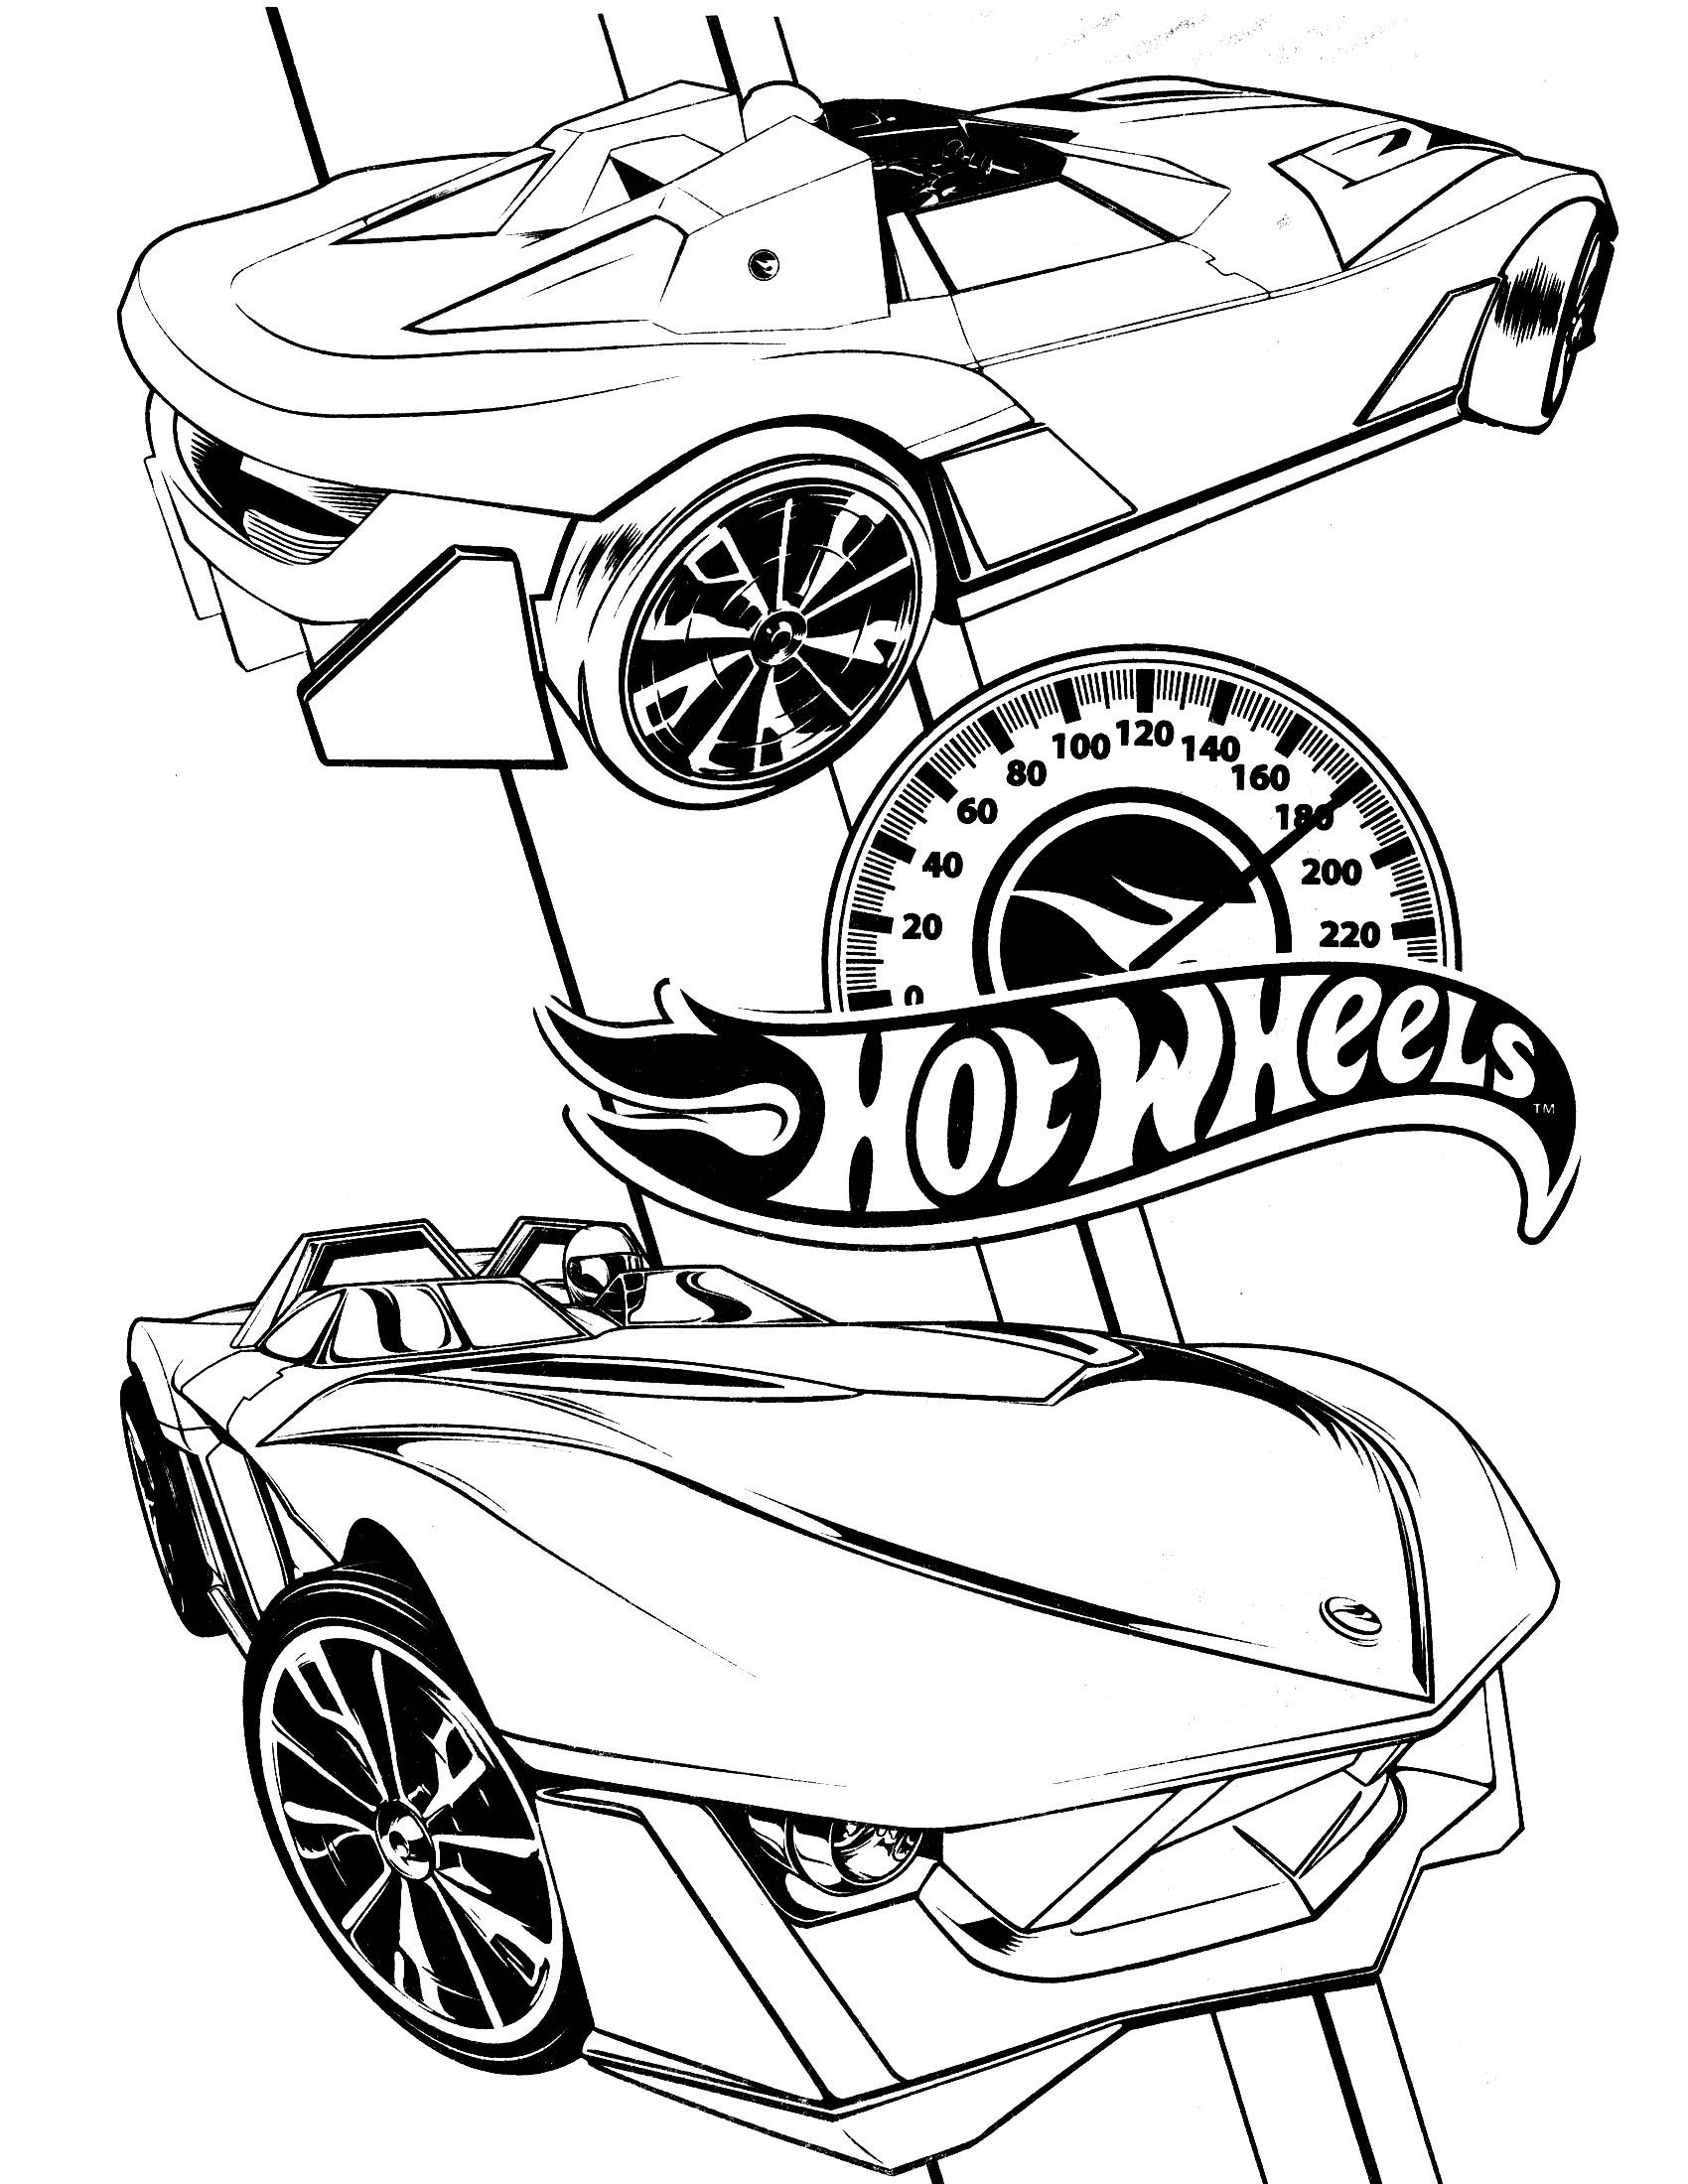 Coloring in the car - Hot Wheels Is A Popular Kids Toy Brand Introduced By Mattel In It Is Not Just Kids Hot Wheels Car Racing Coloring